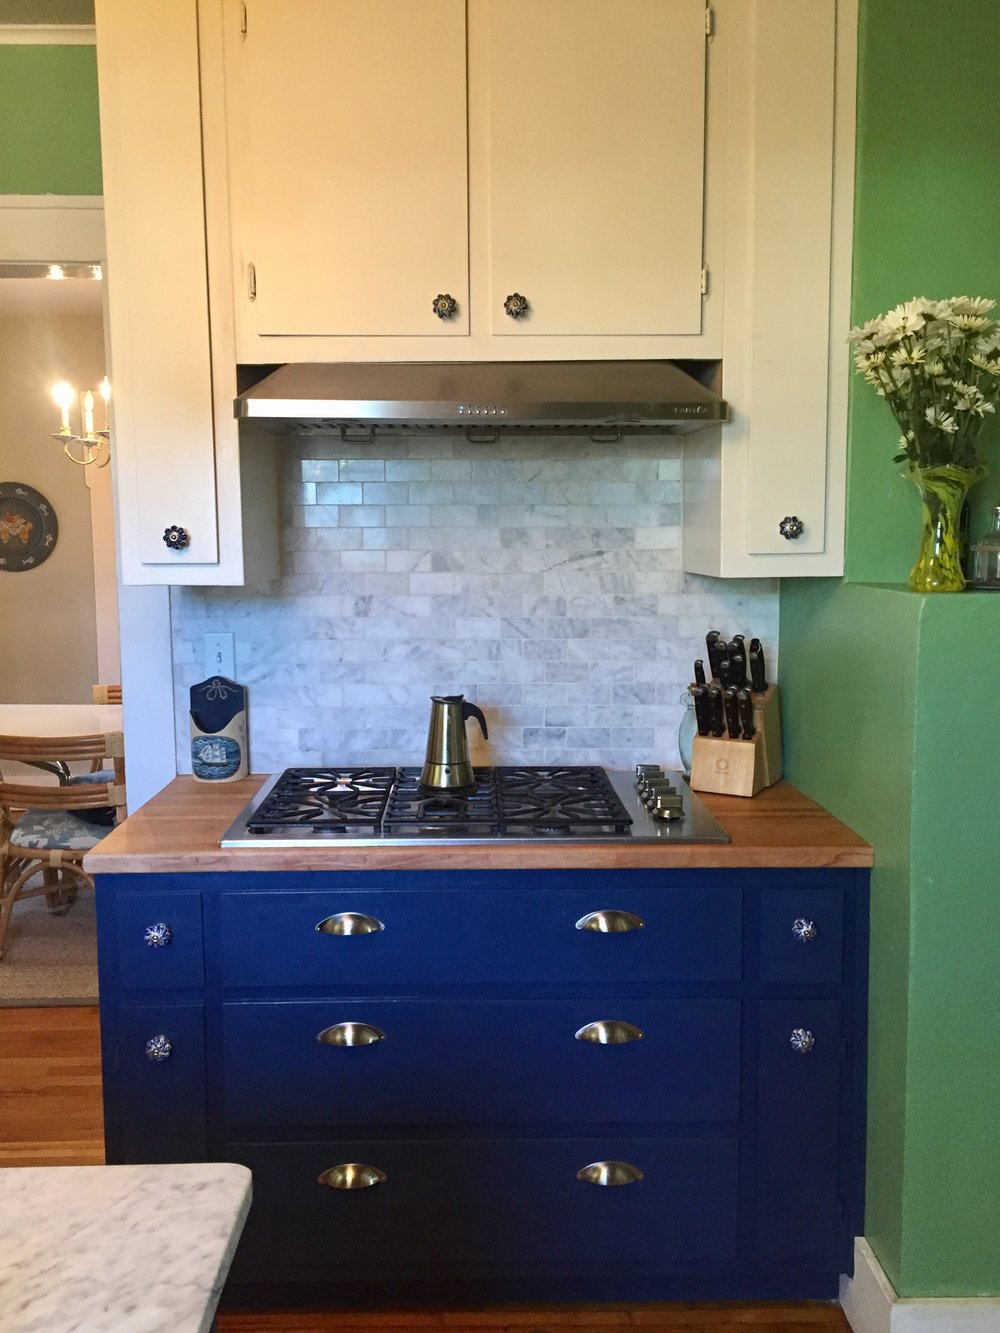 stovetop-spiceracks-marble-backsplash-stainless-steel-hood-cobalt-blue-cabinetry